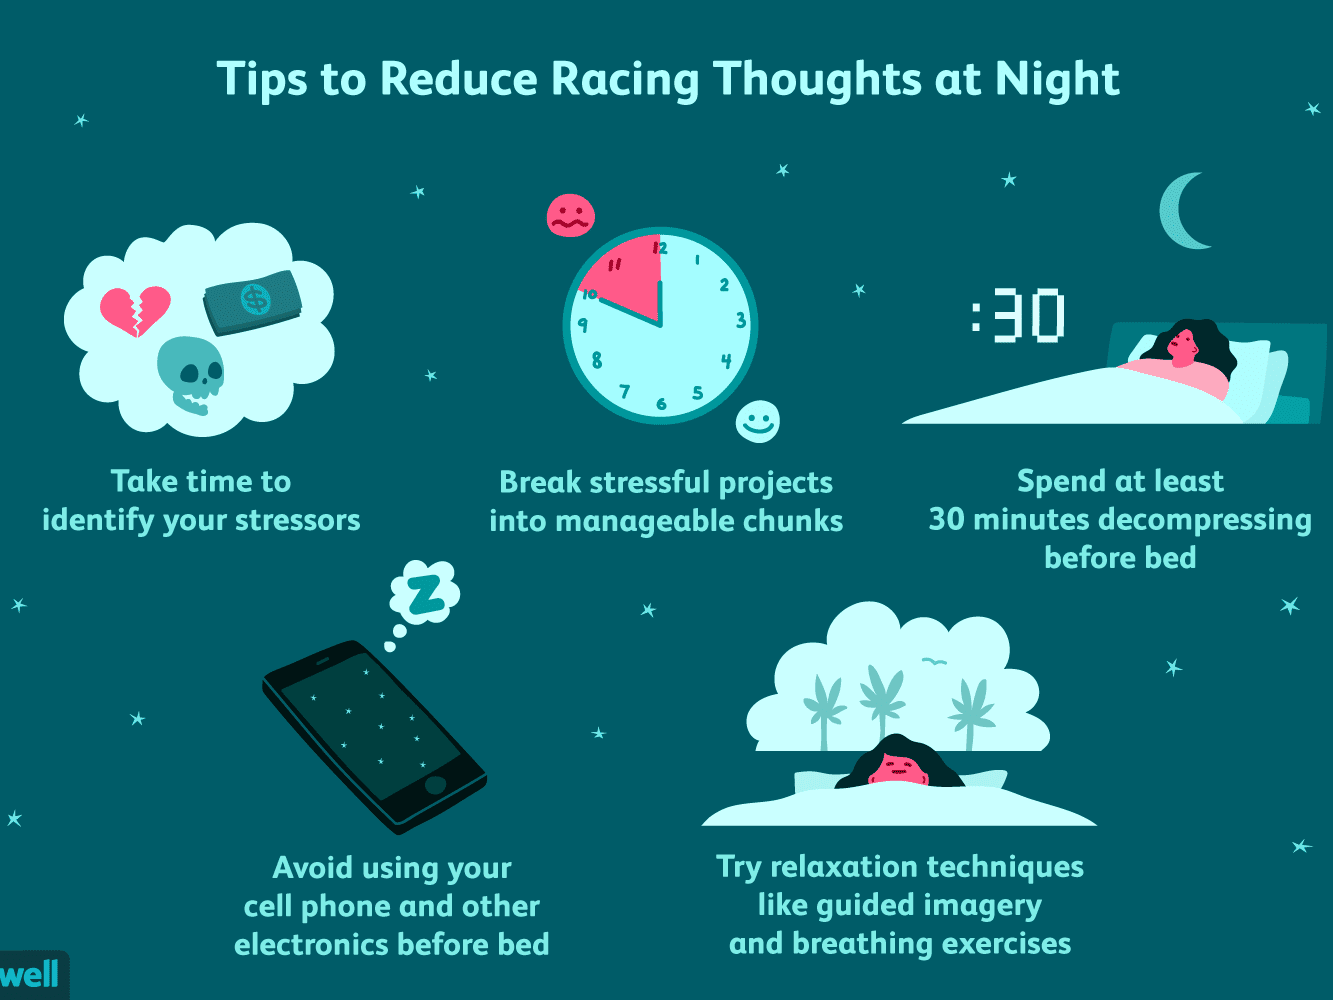 How To Reduce Racing Thoughts At Night Due To Insomnia